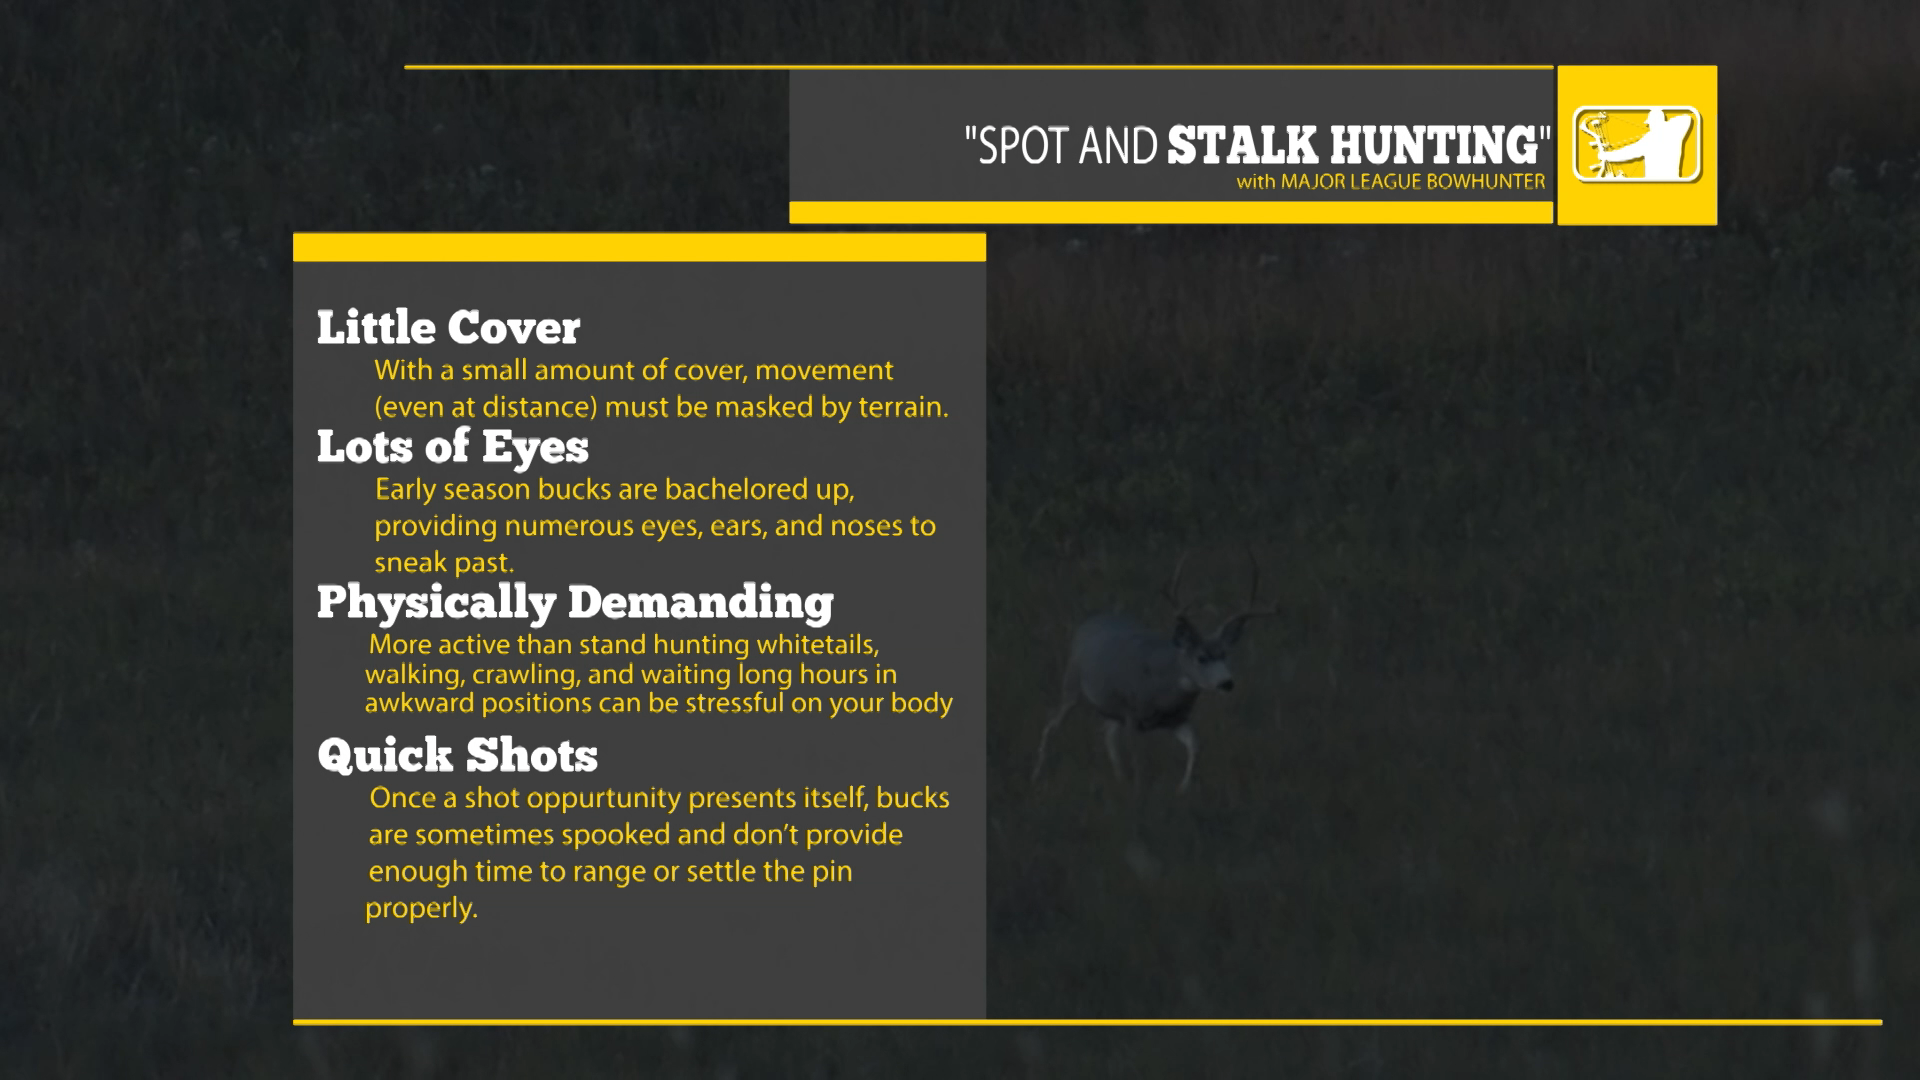 SPOT AND STALK HUNTING